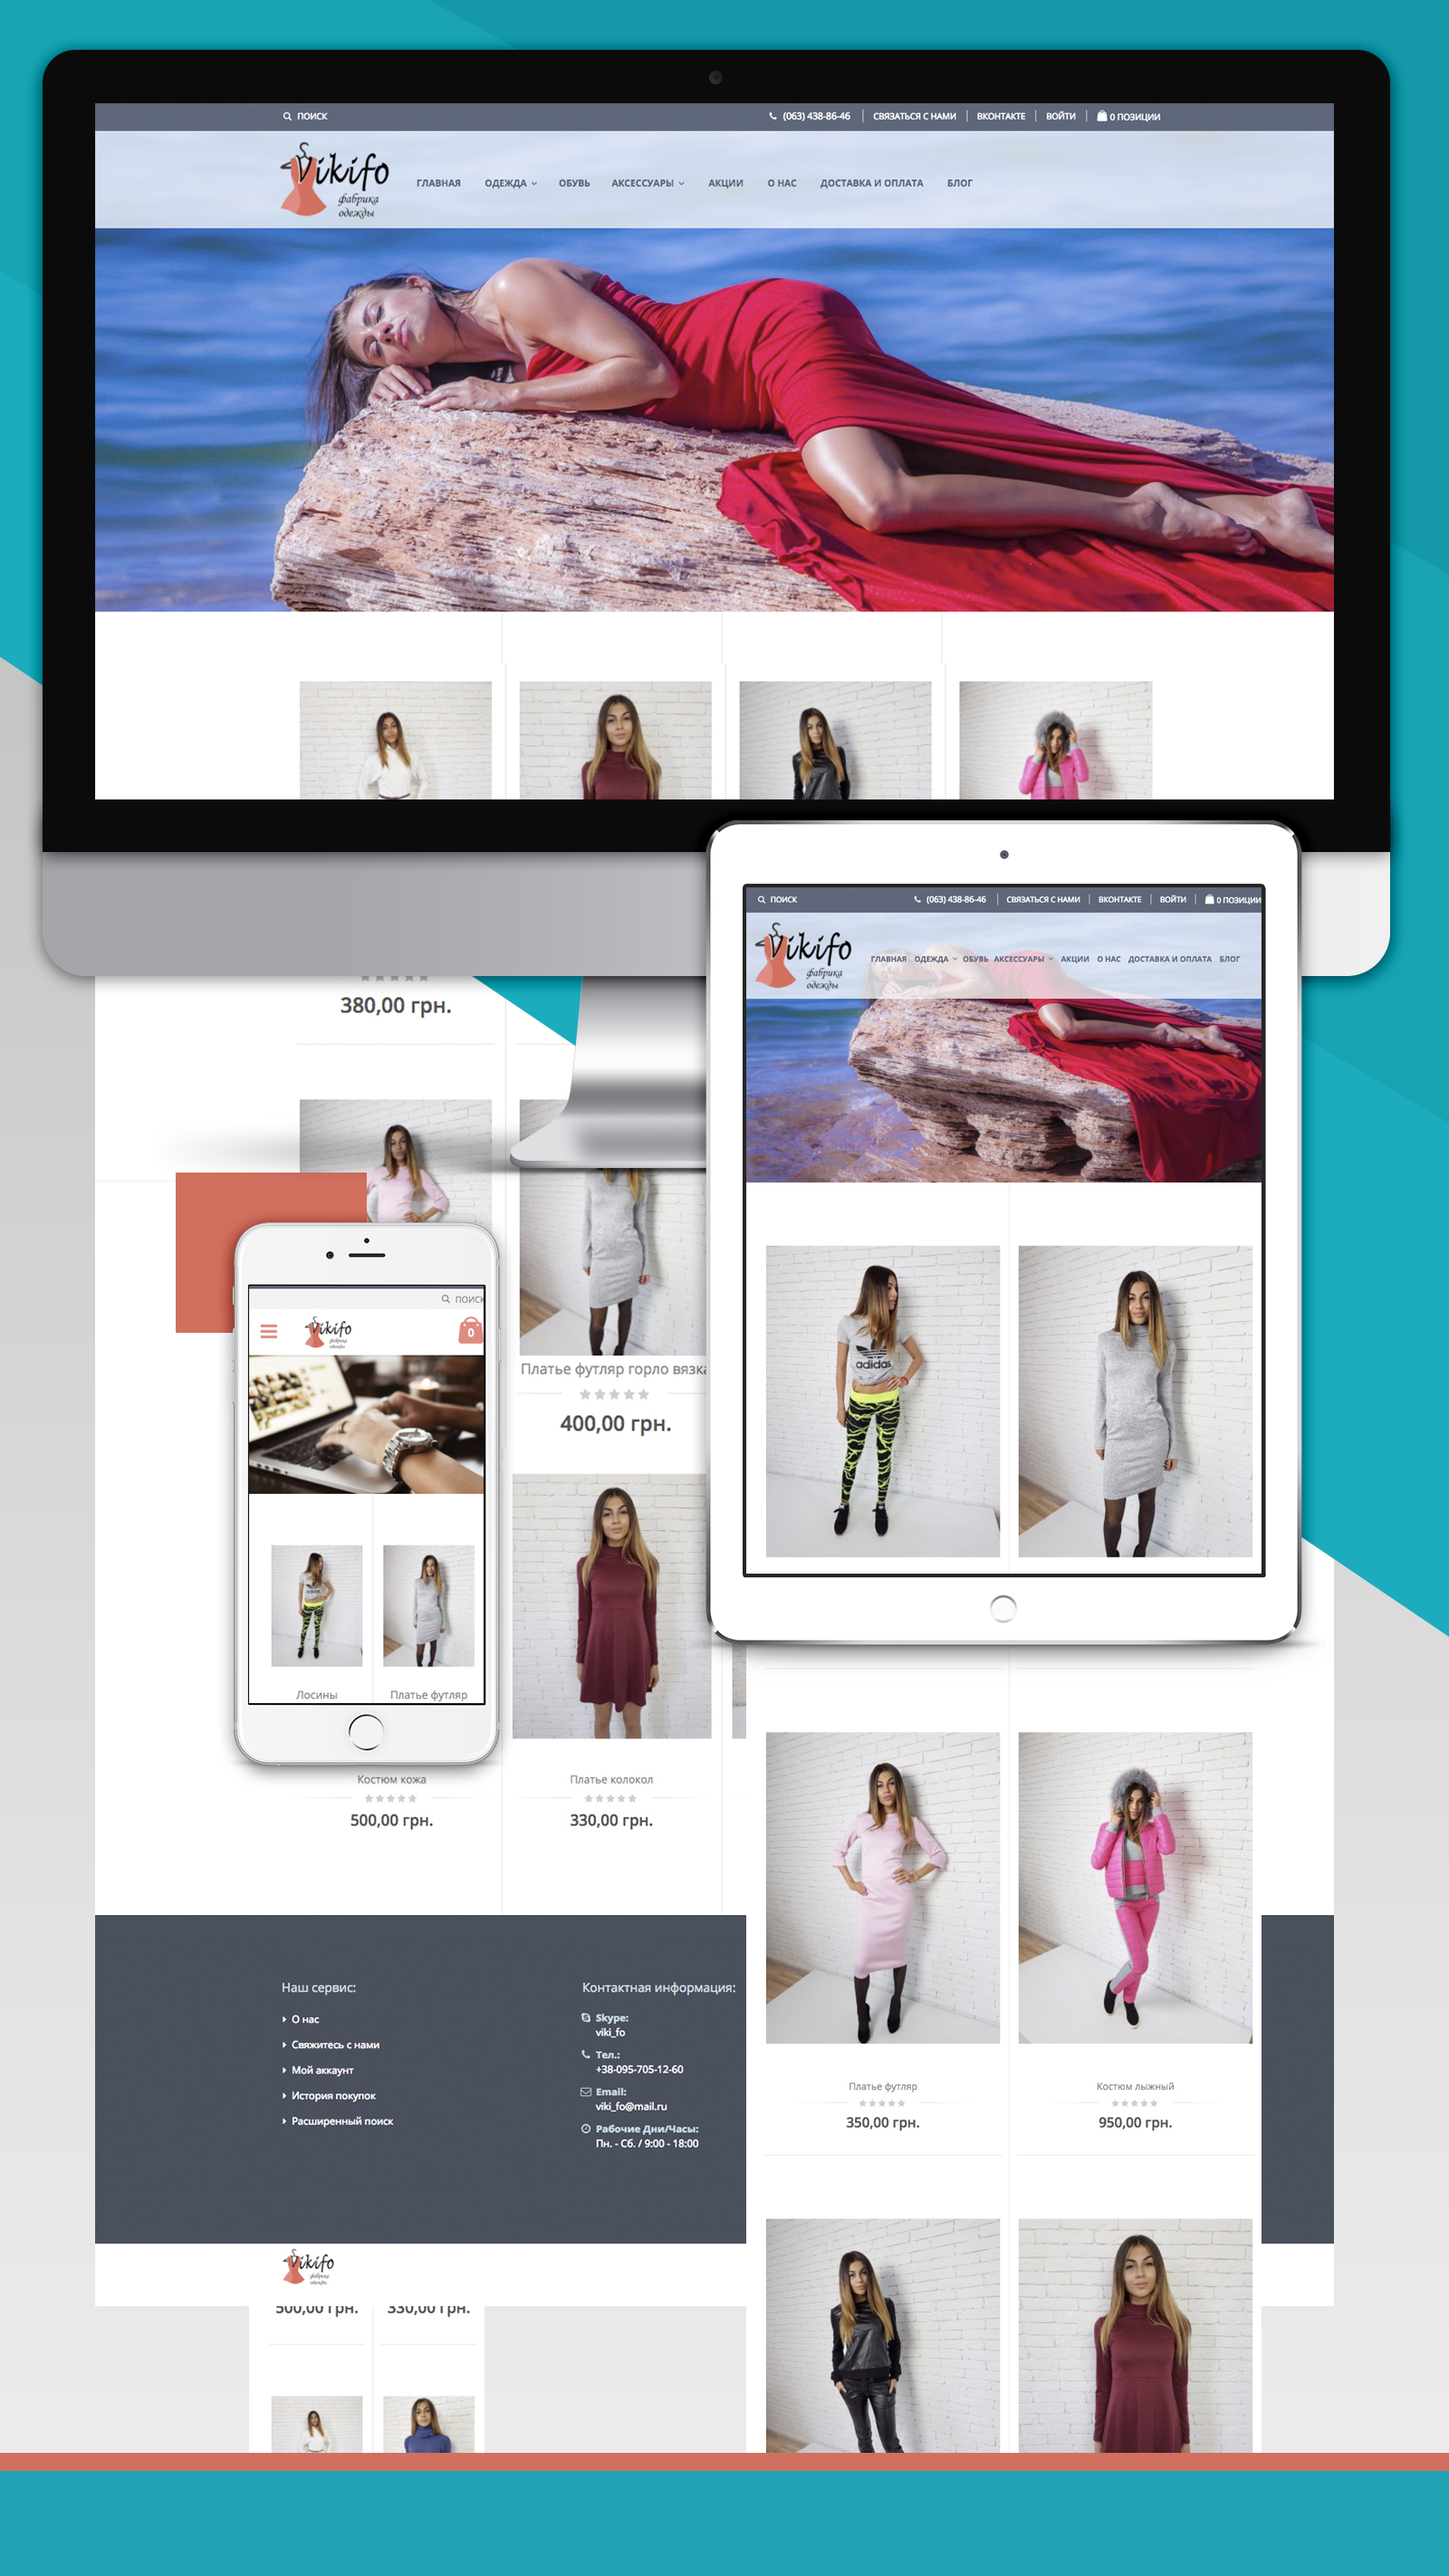 Vikifo - show case of online-shop developed on Magento e-commerce platform.